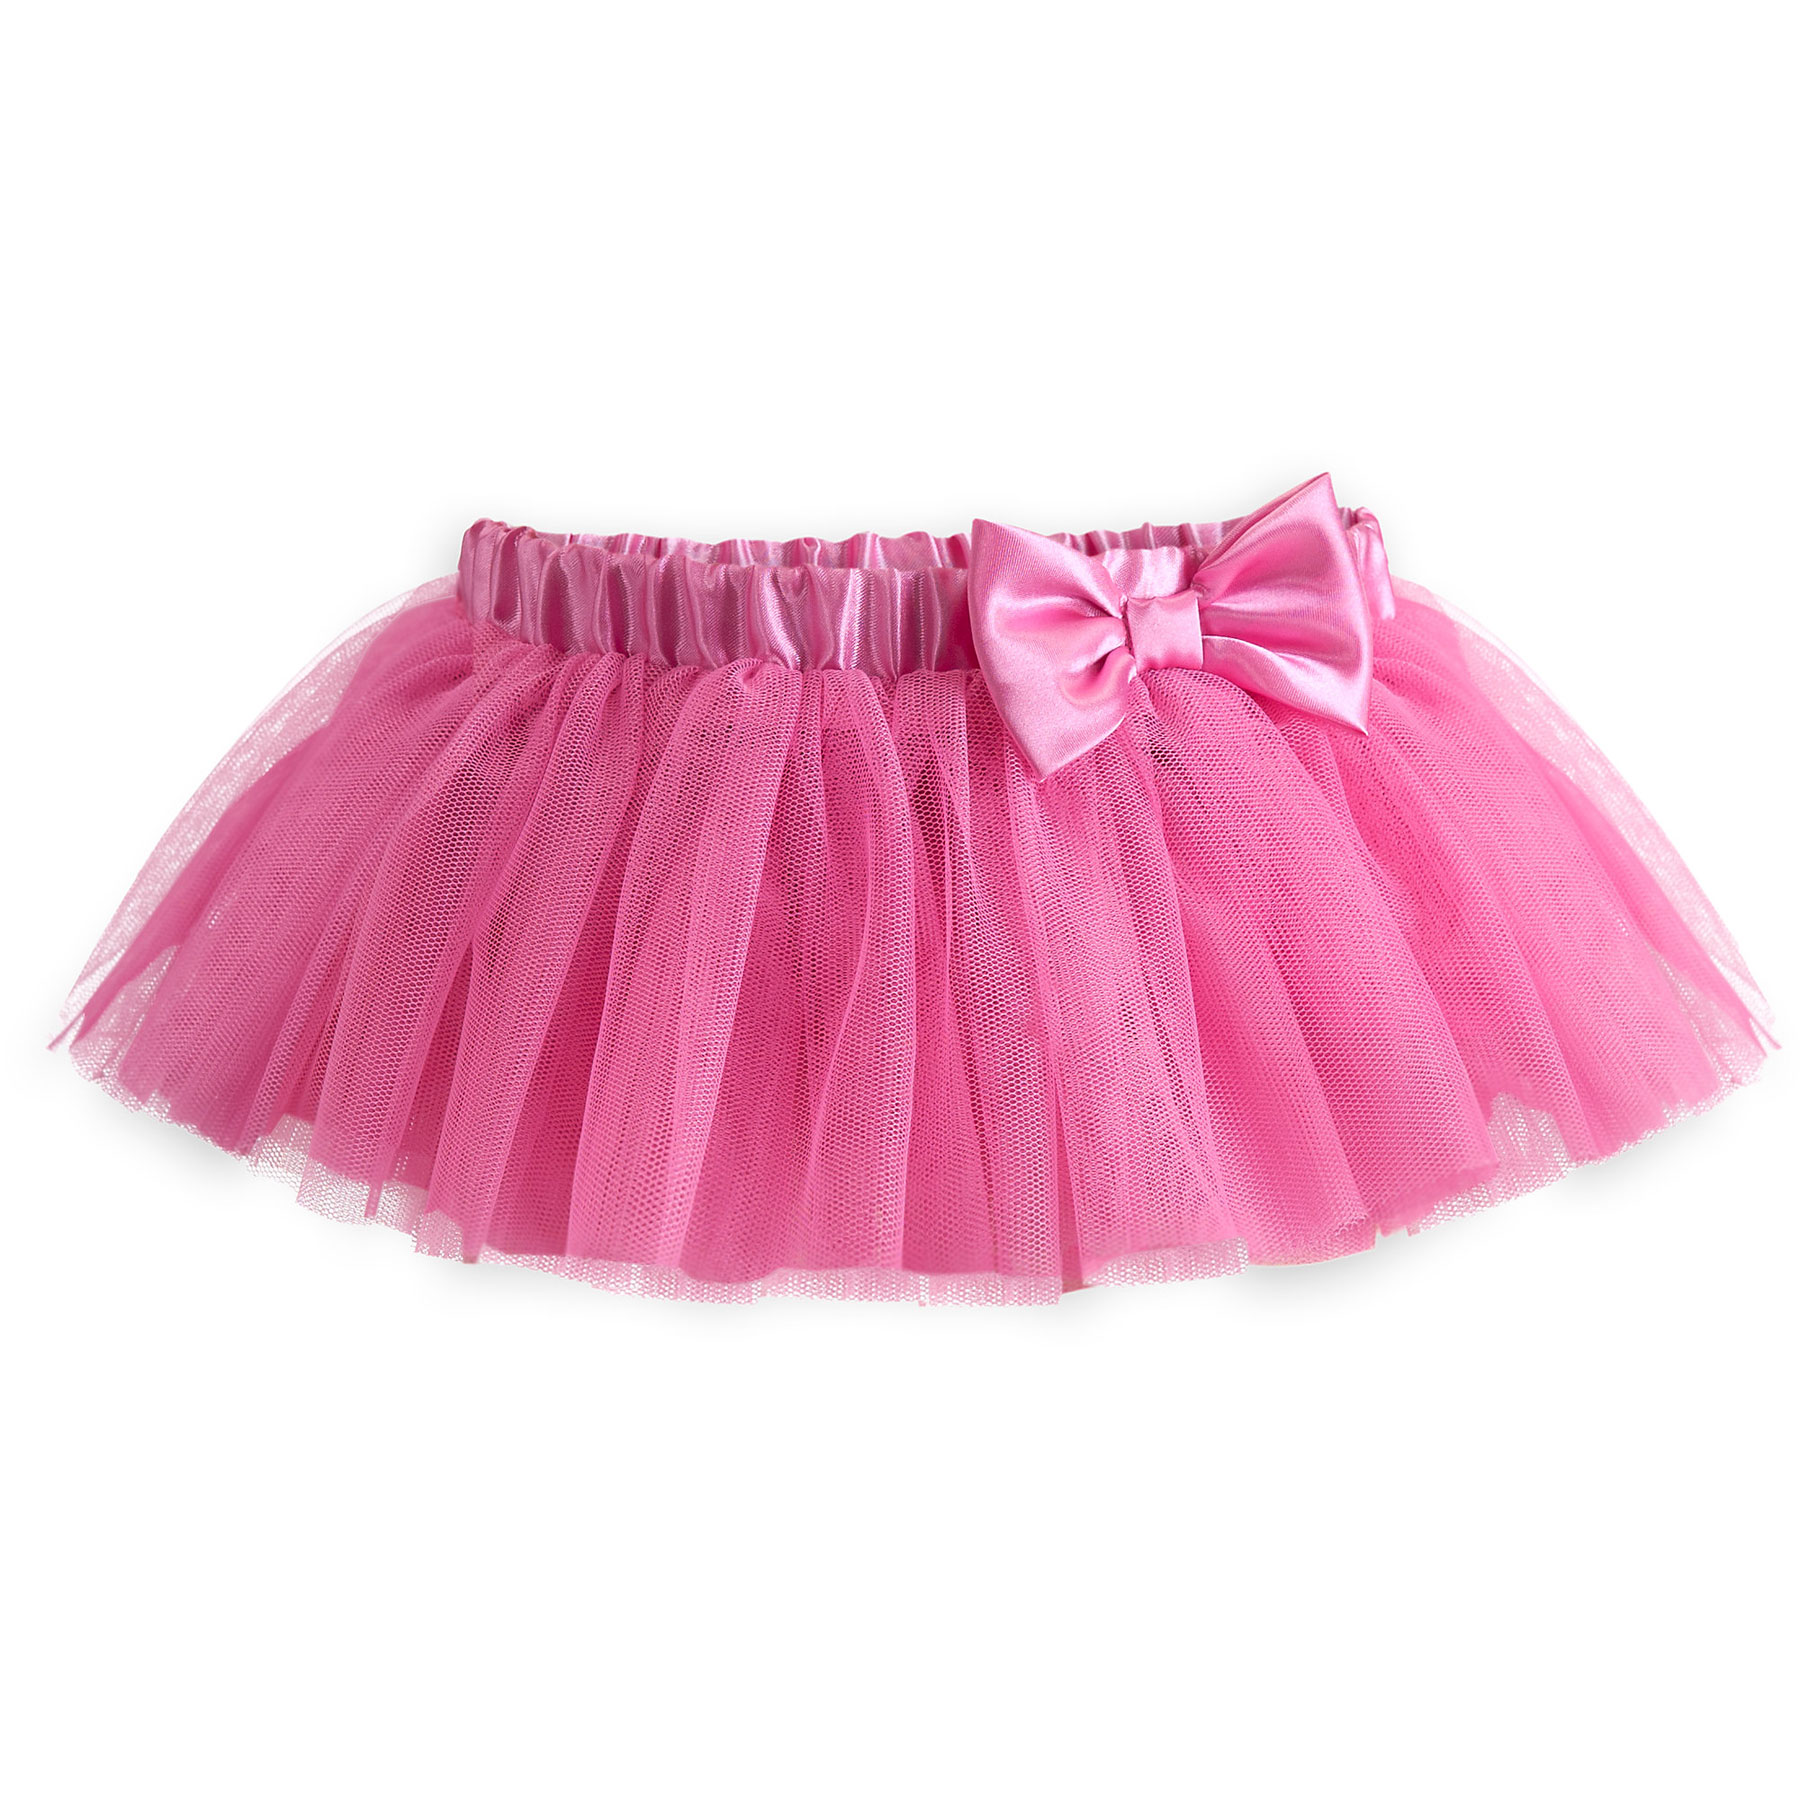 Pink Tutu View | Free Images at Clker.com - vector clip ...Pink Tutu Baby Clipart